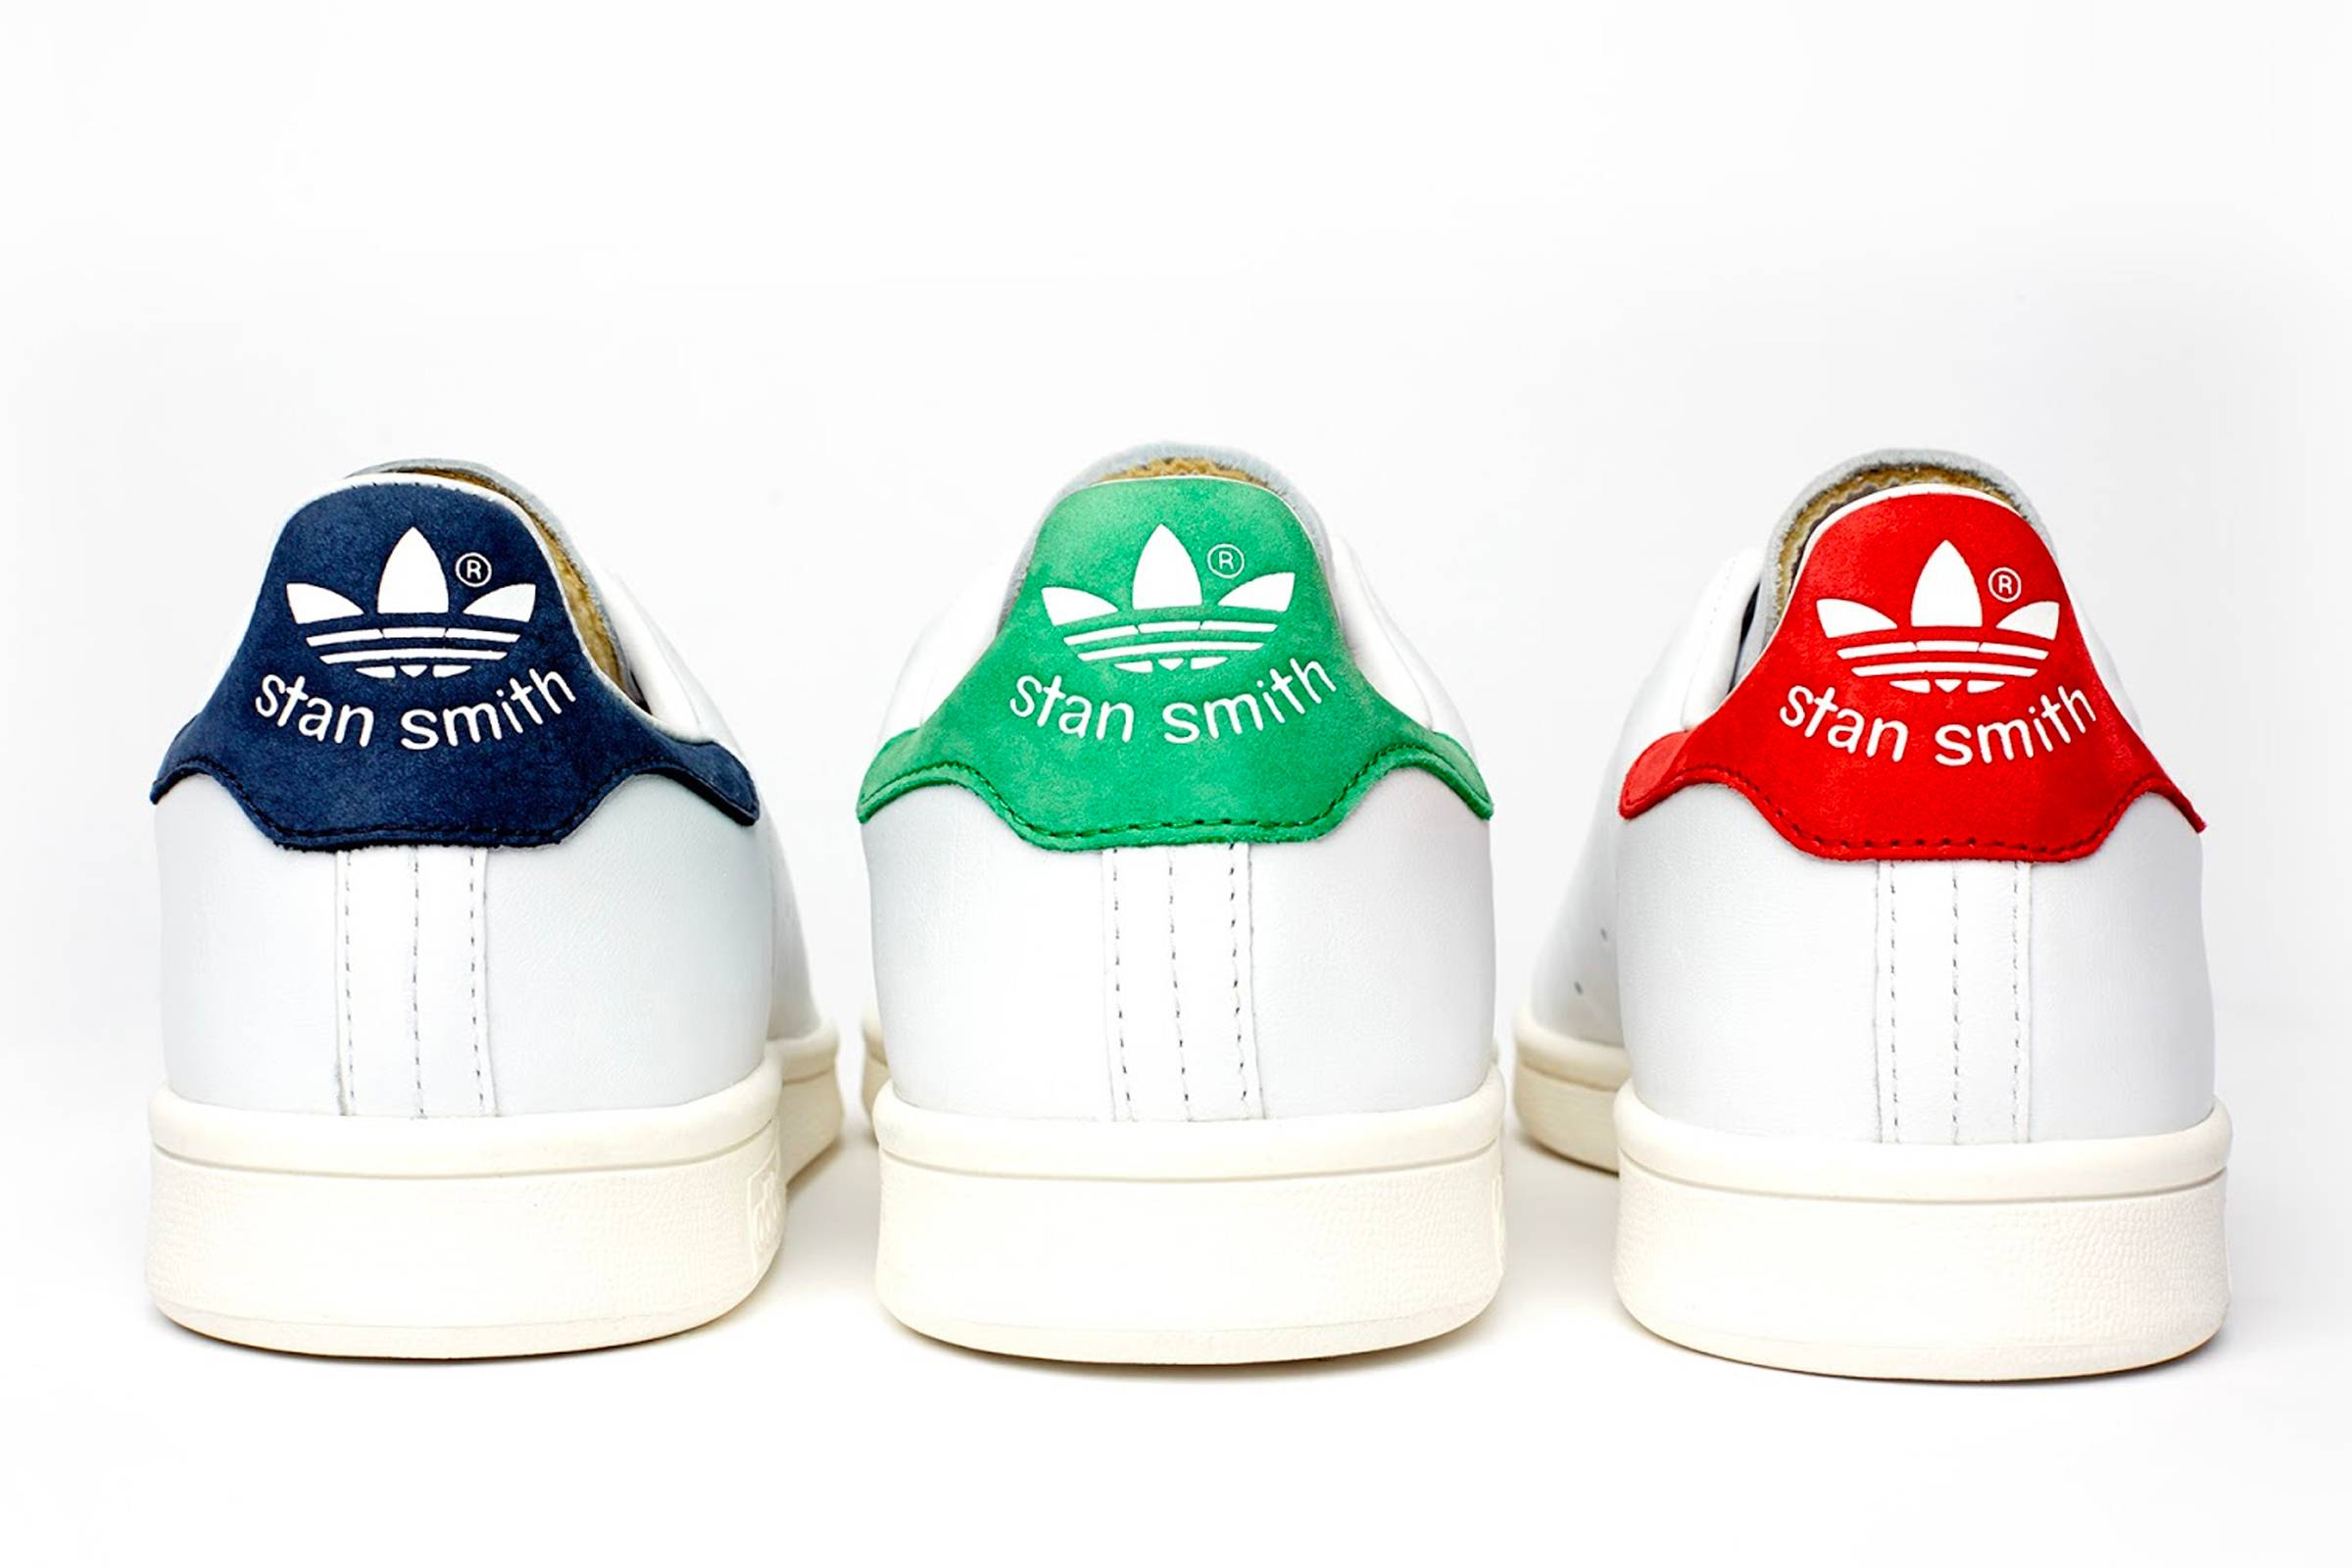 More Than Just a Man: A History of the adidas Stan Smith